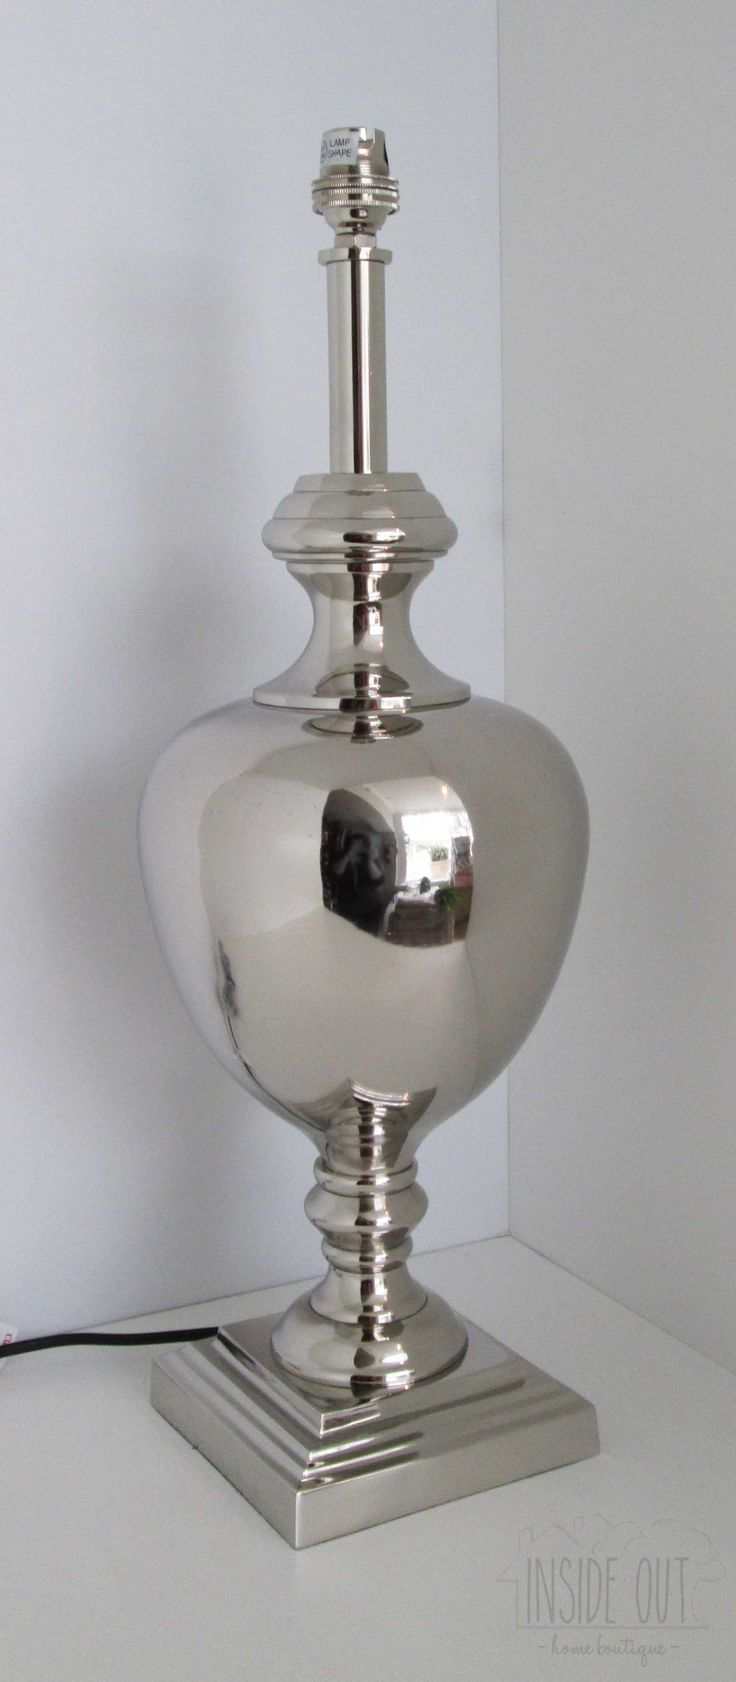 Silver Plated Lamp Base - Inside Out Home Boutique - Please check stock availability